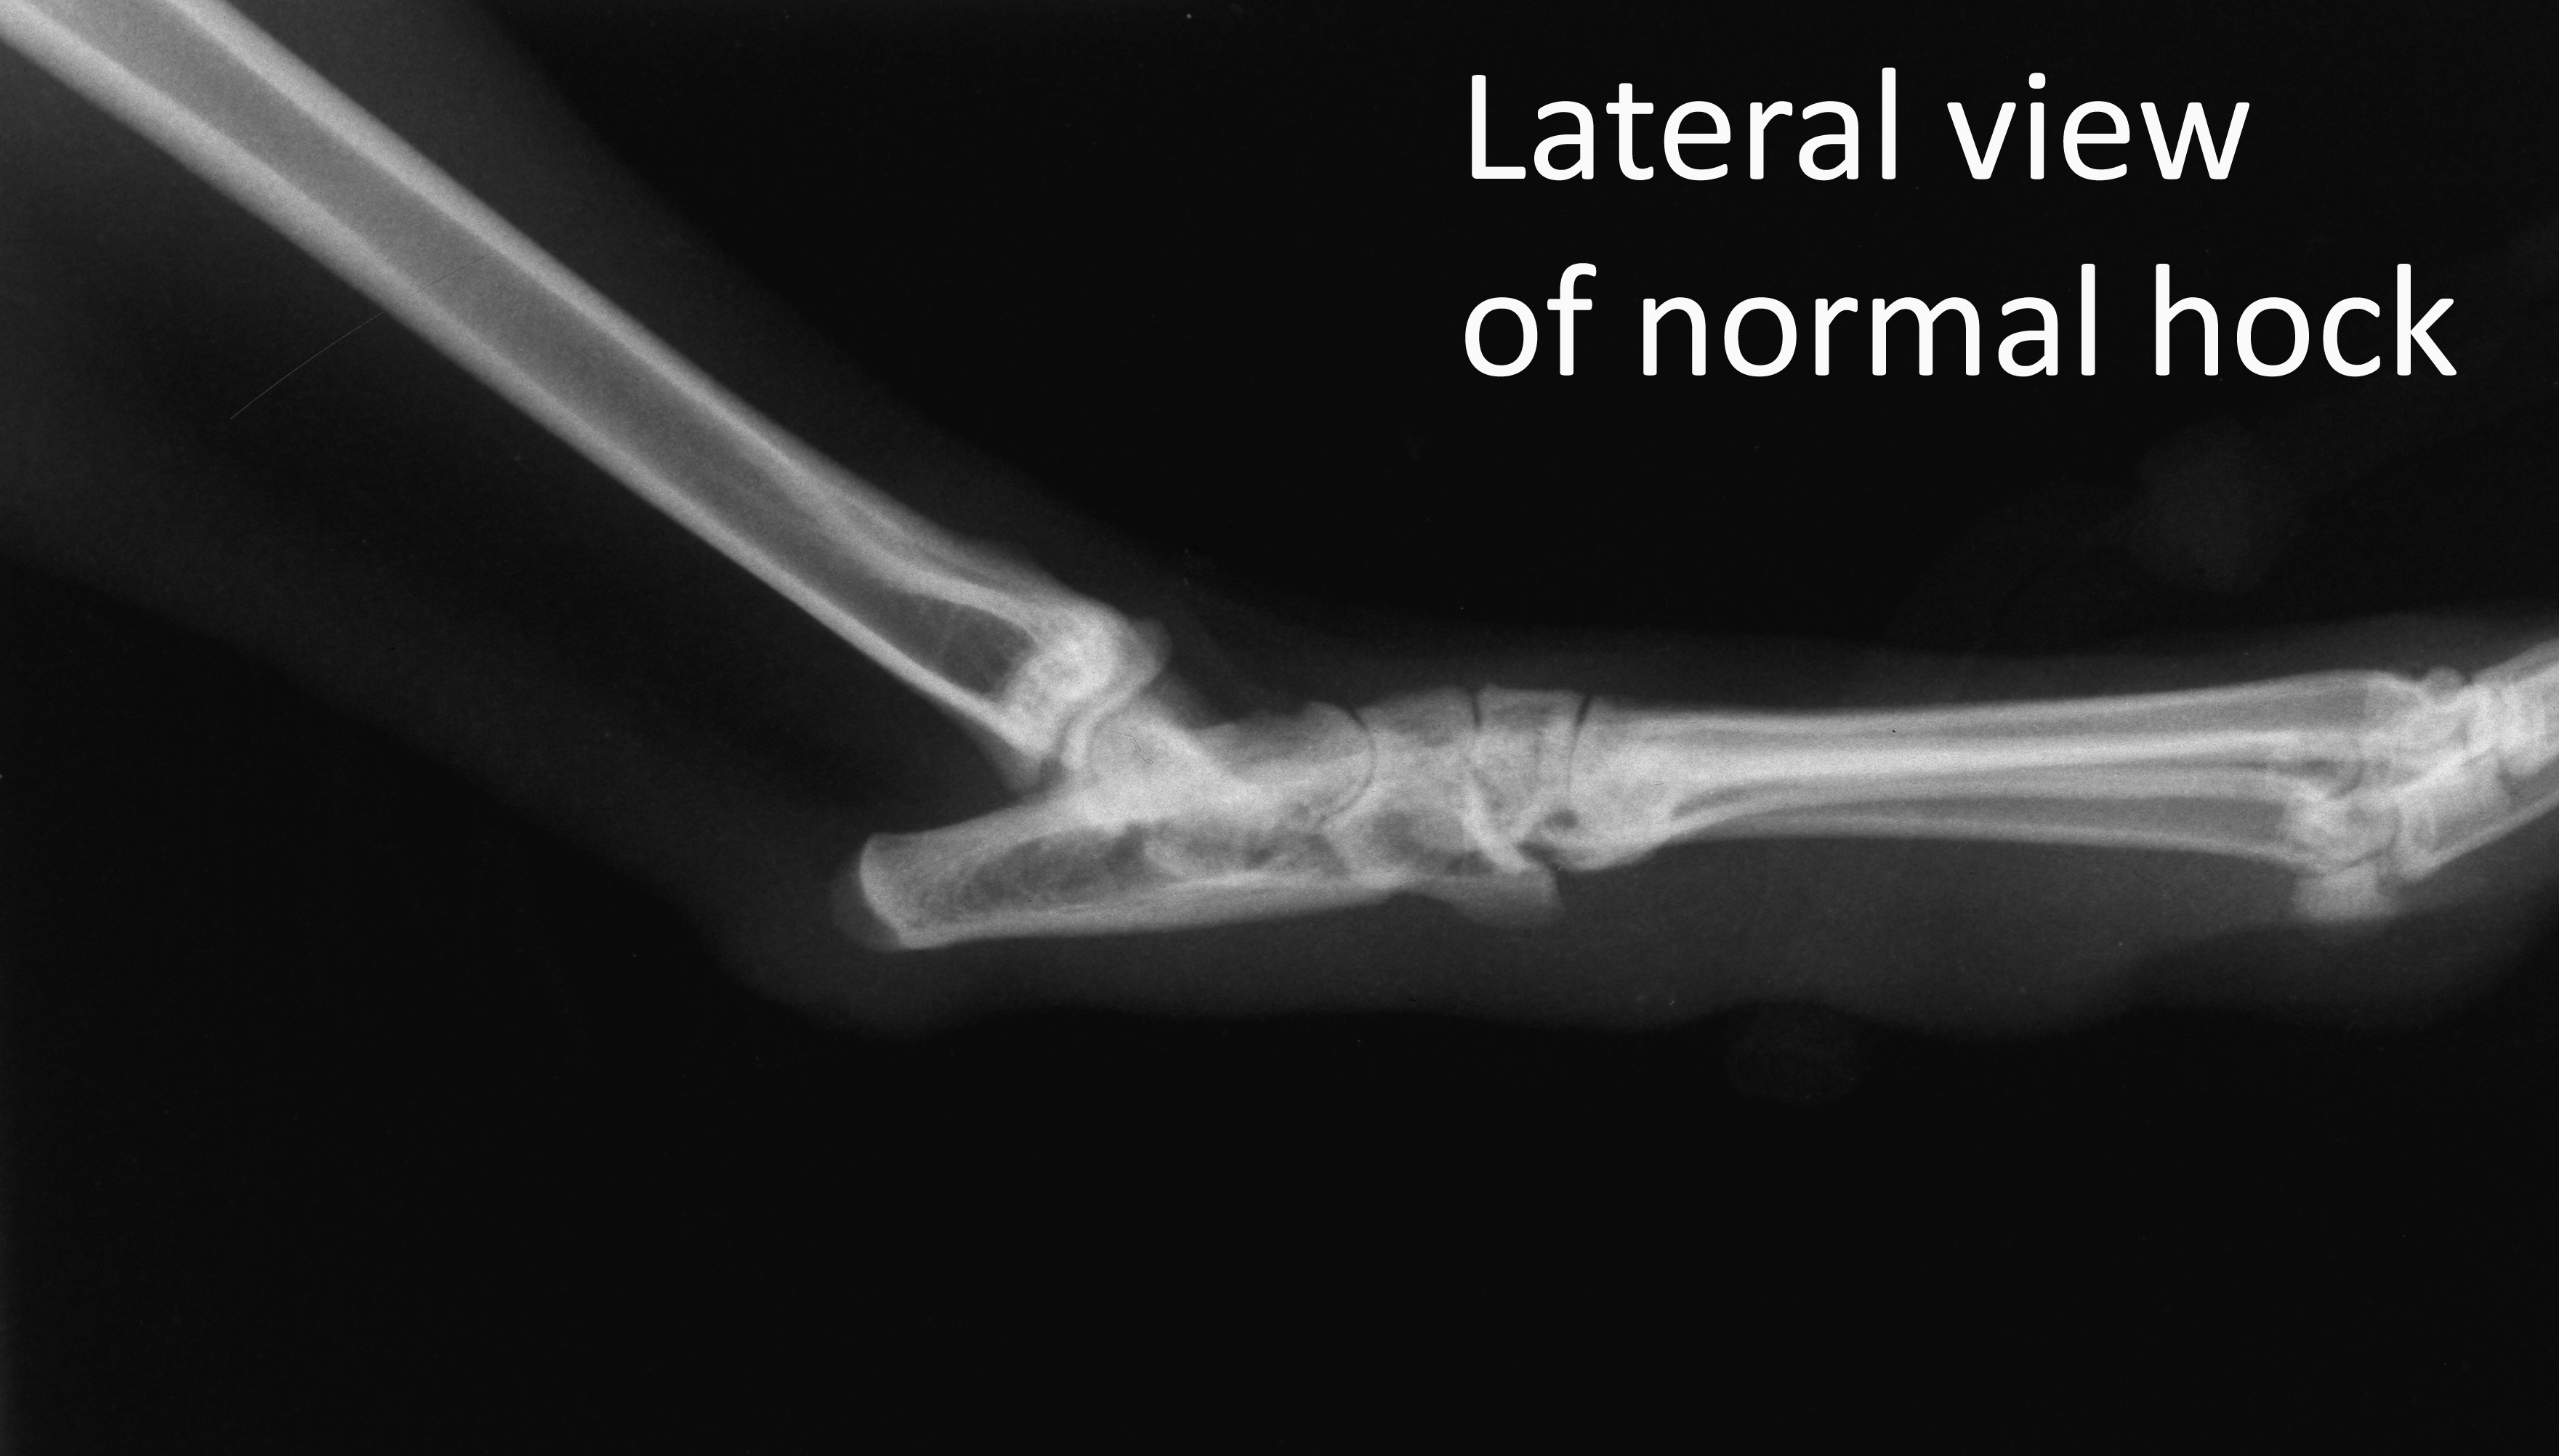 Lateral view of normal hock